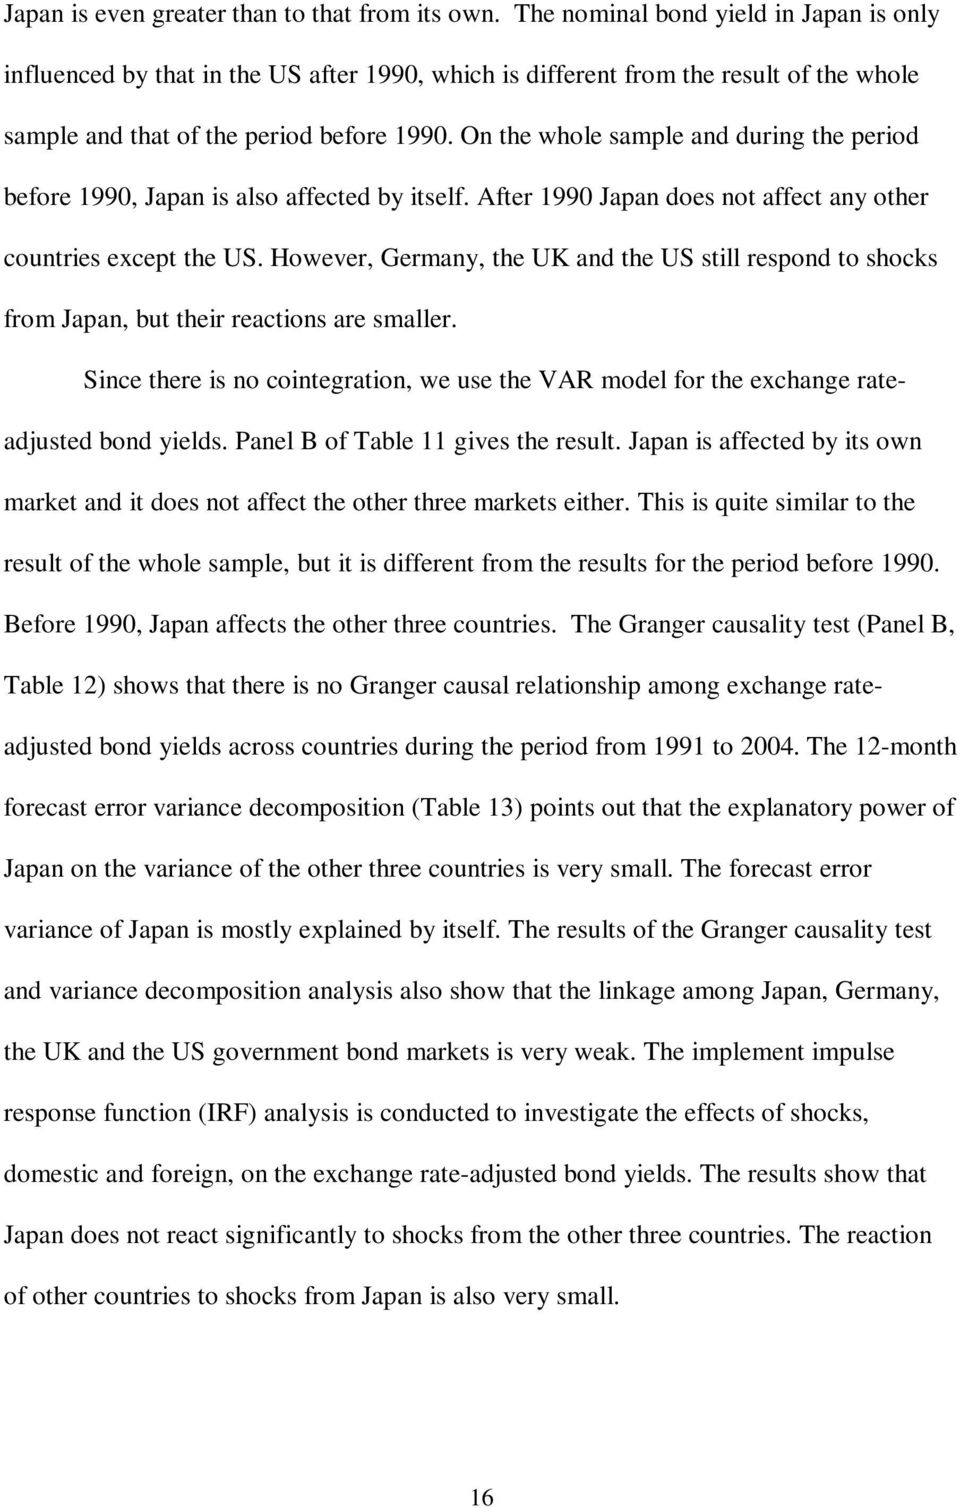 On the whole sample and during the period before 1990, Japan is also affected by itself. After 1990 Japan does not affect any other countries except the US.